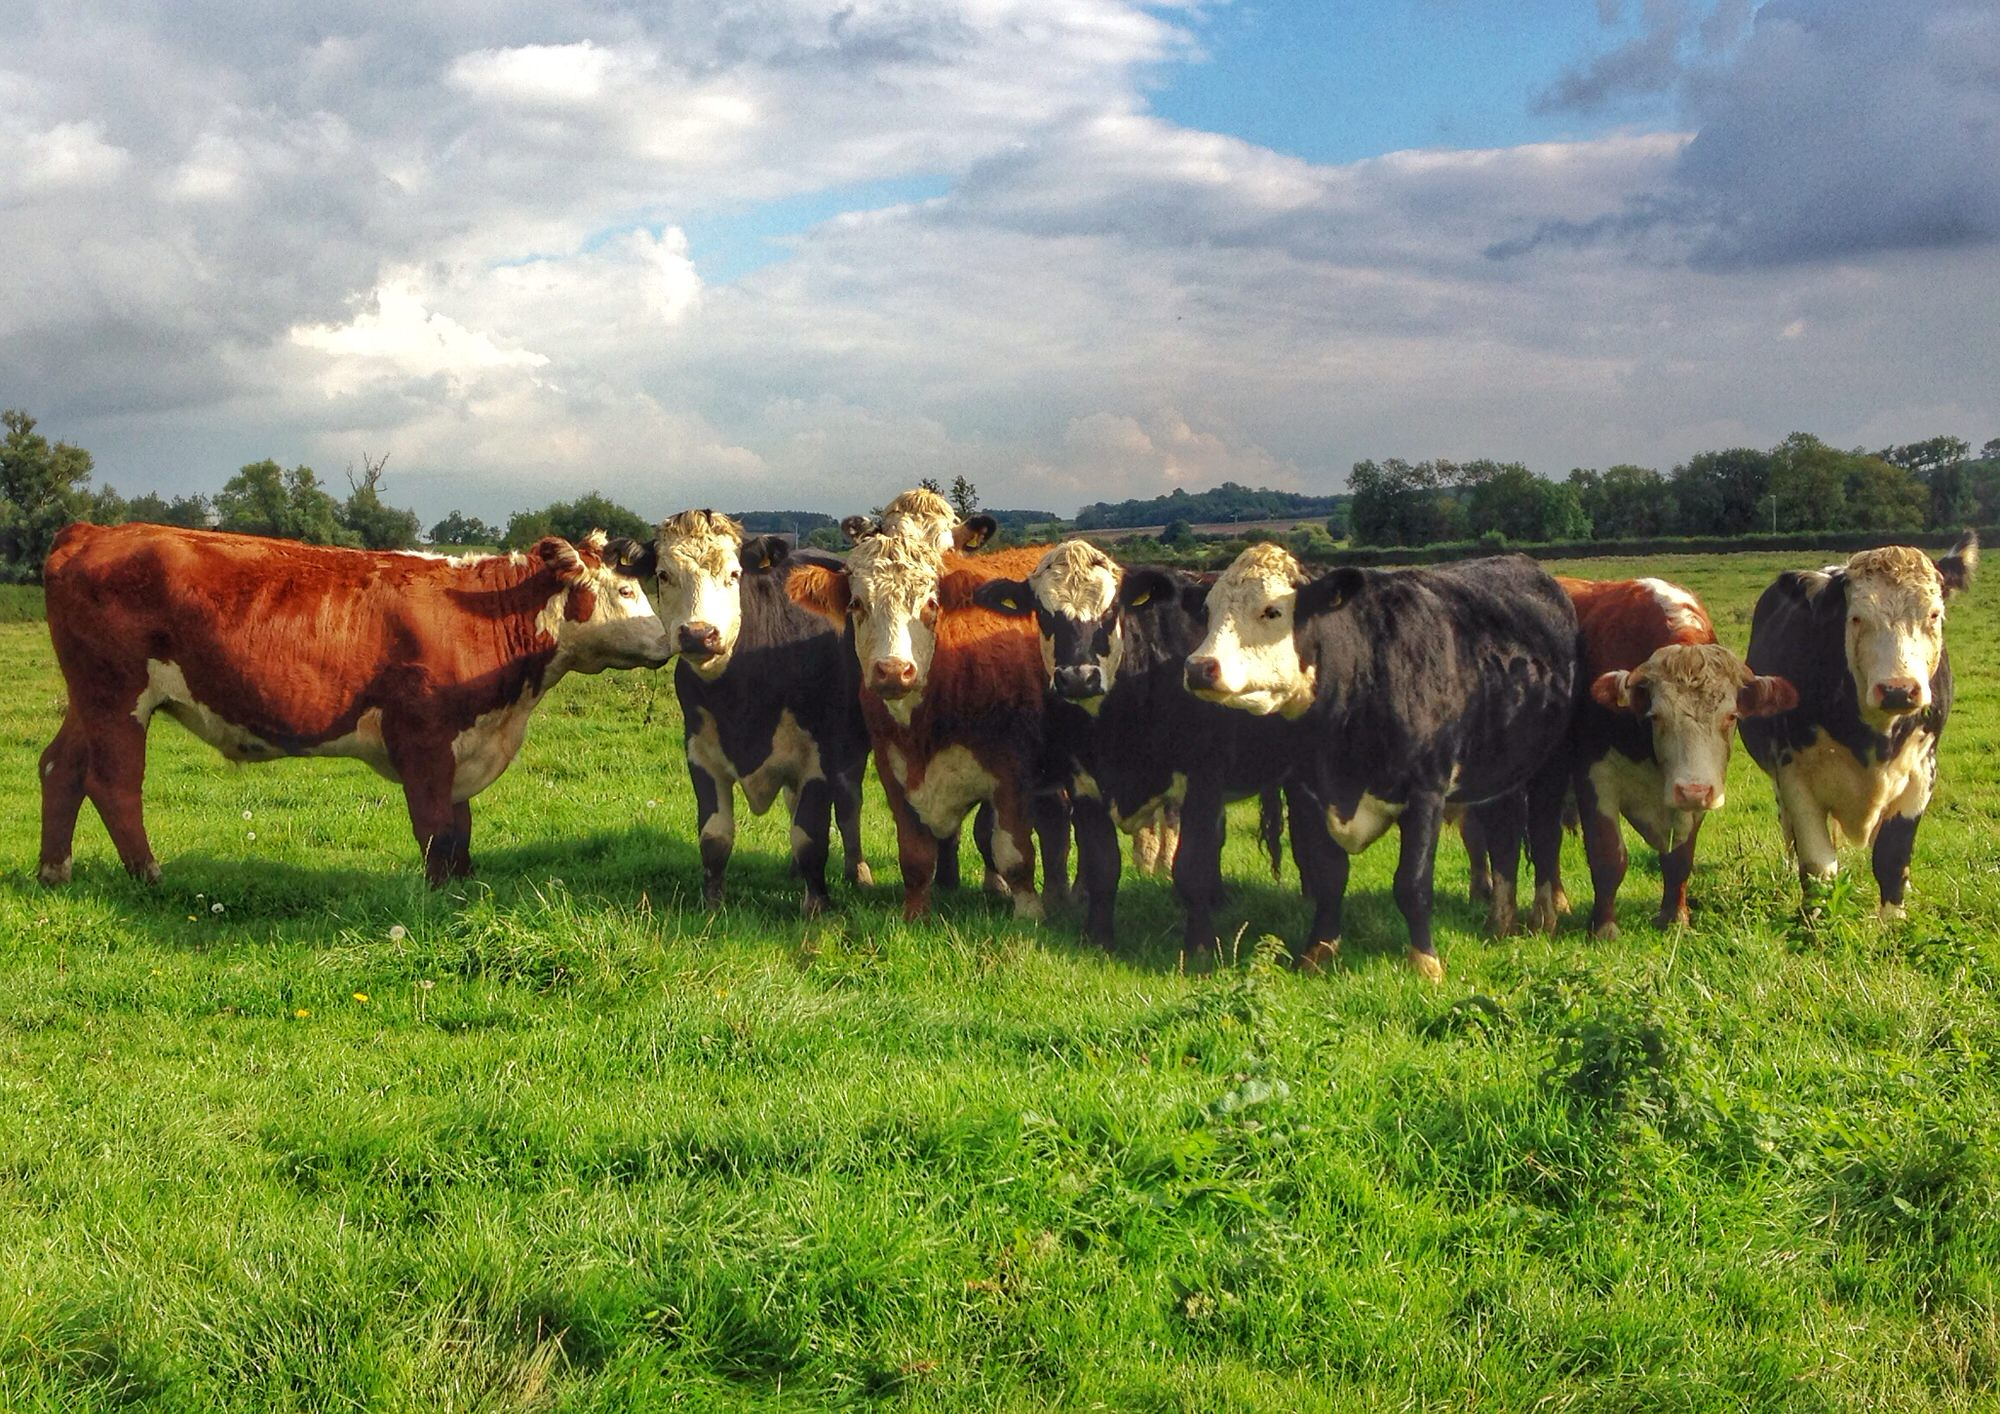 Cows near Oundle UK